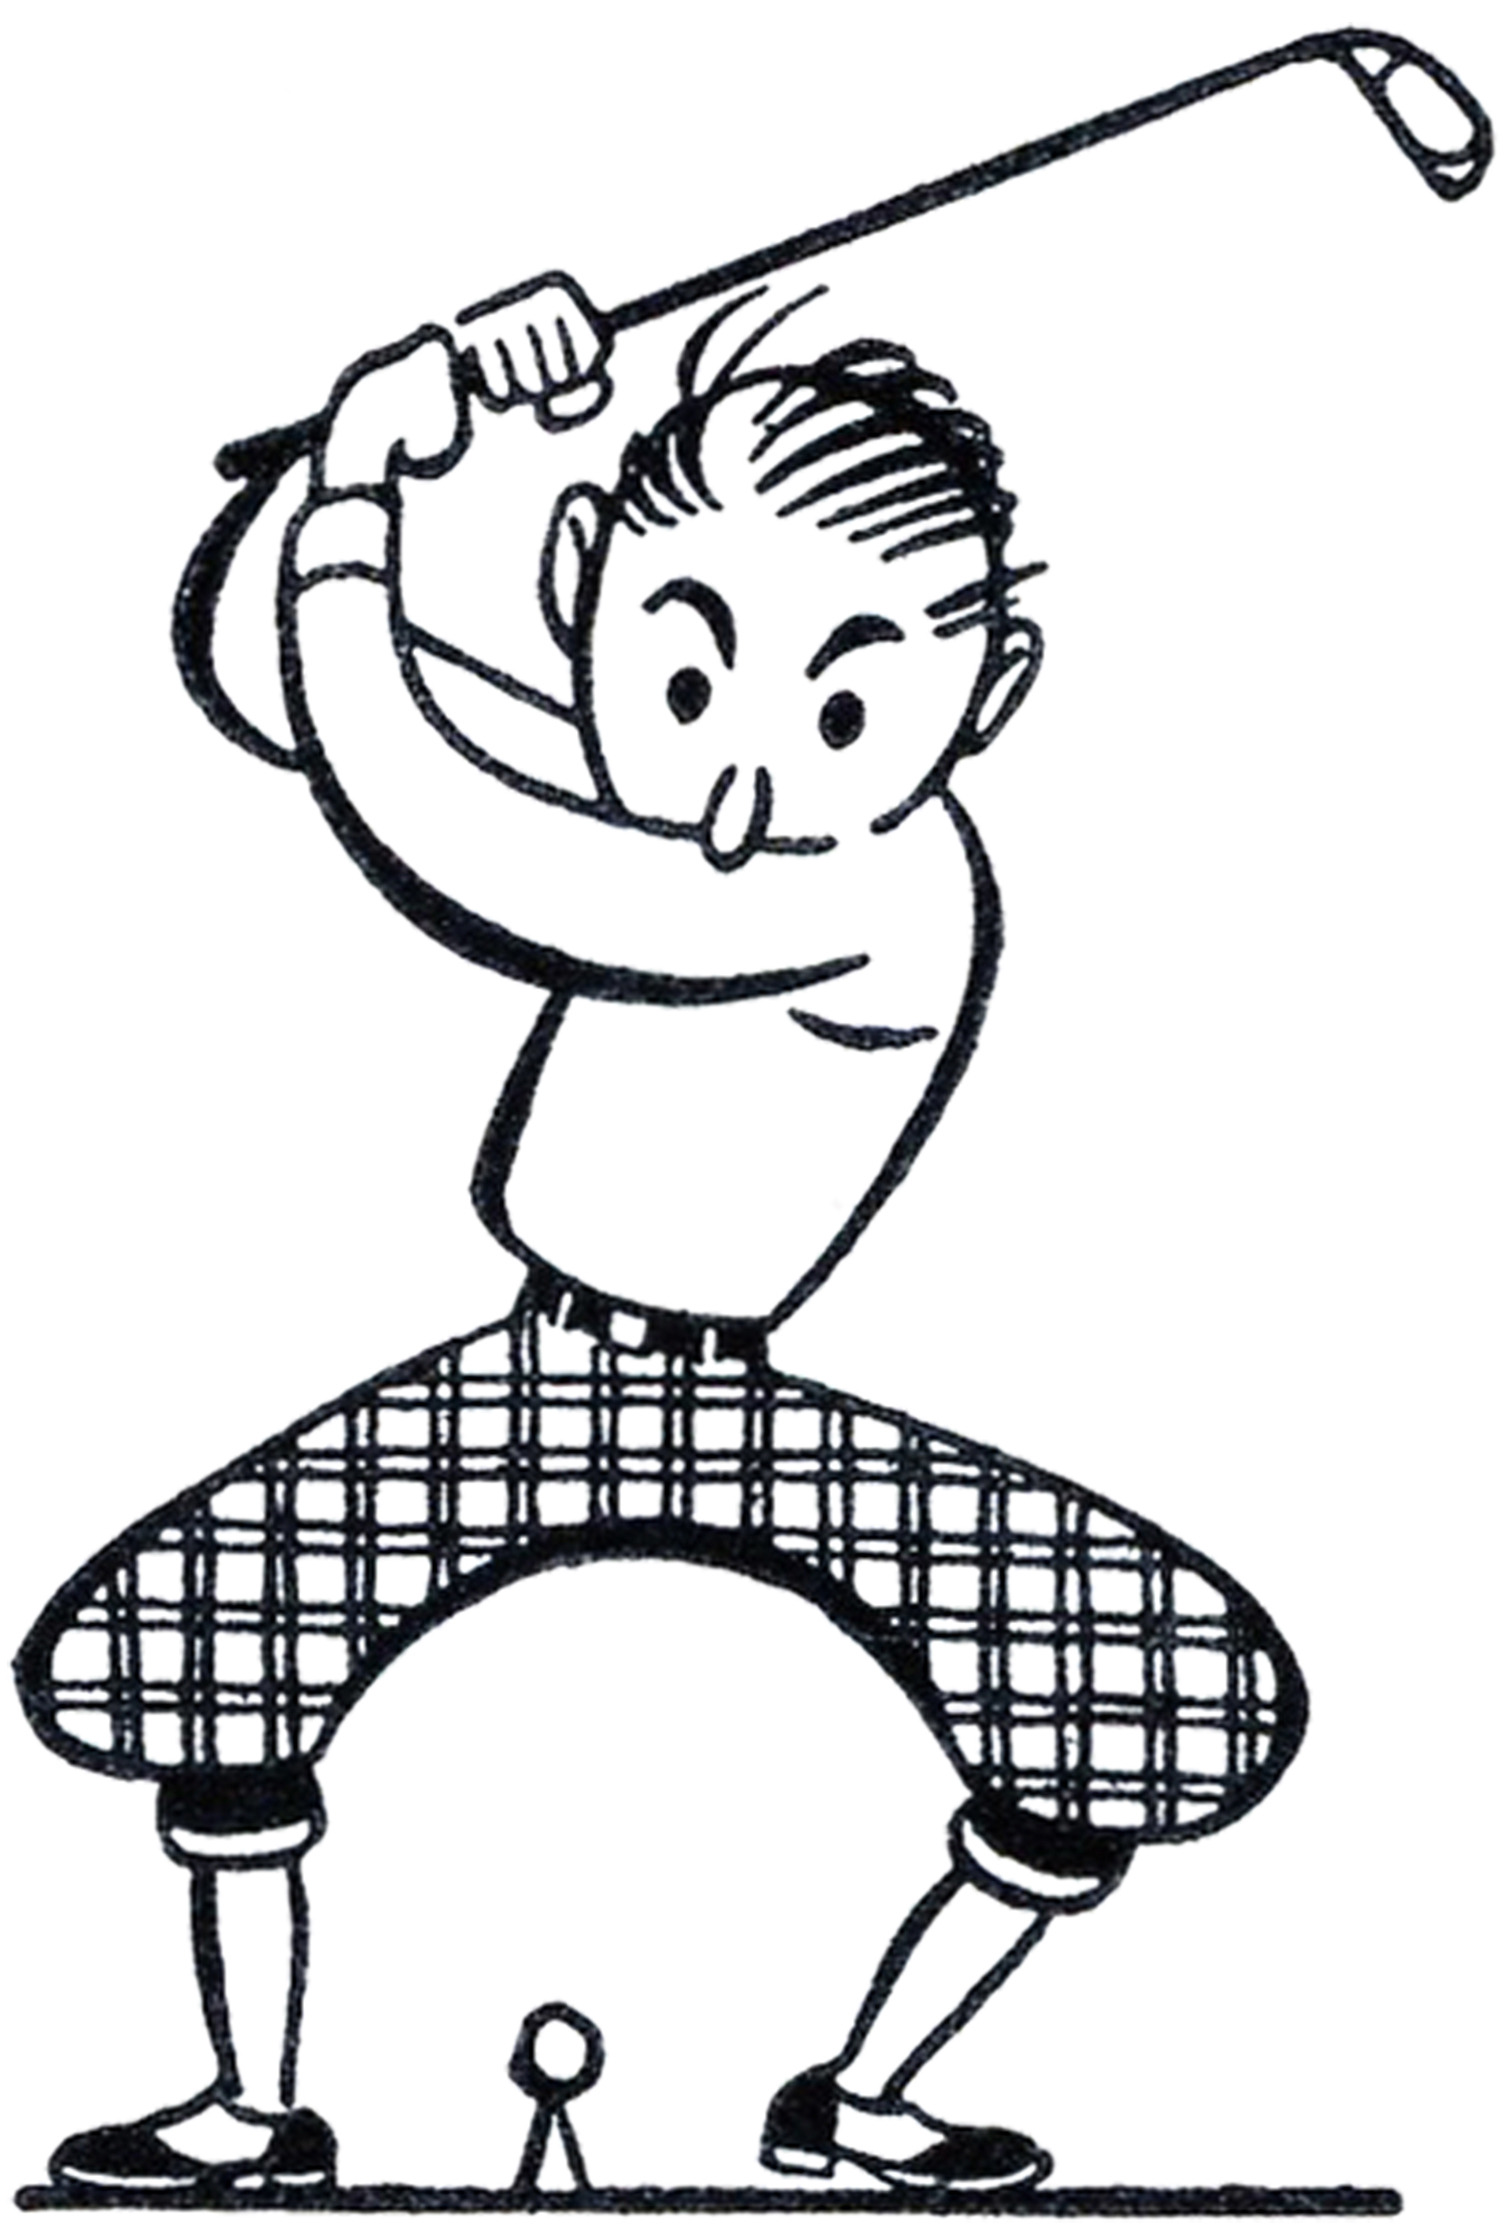 Funny golf clipart png freeuse stock Retro Golf Clip Art - Funny! - The Graphics Fairy png freeuse stock